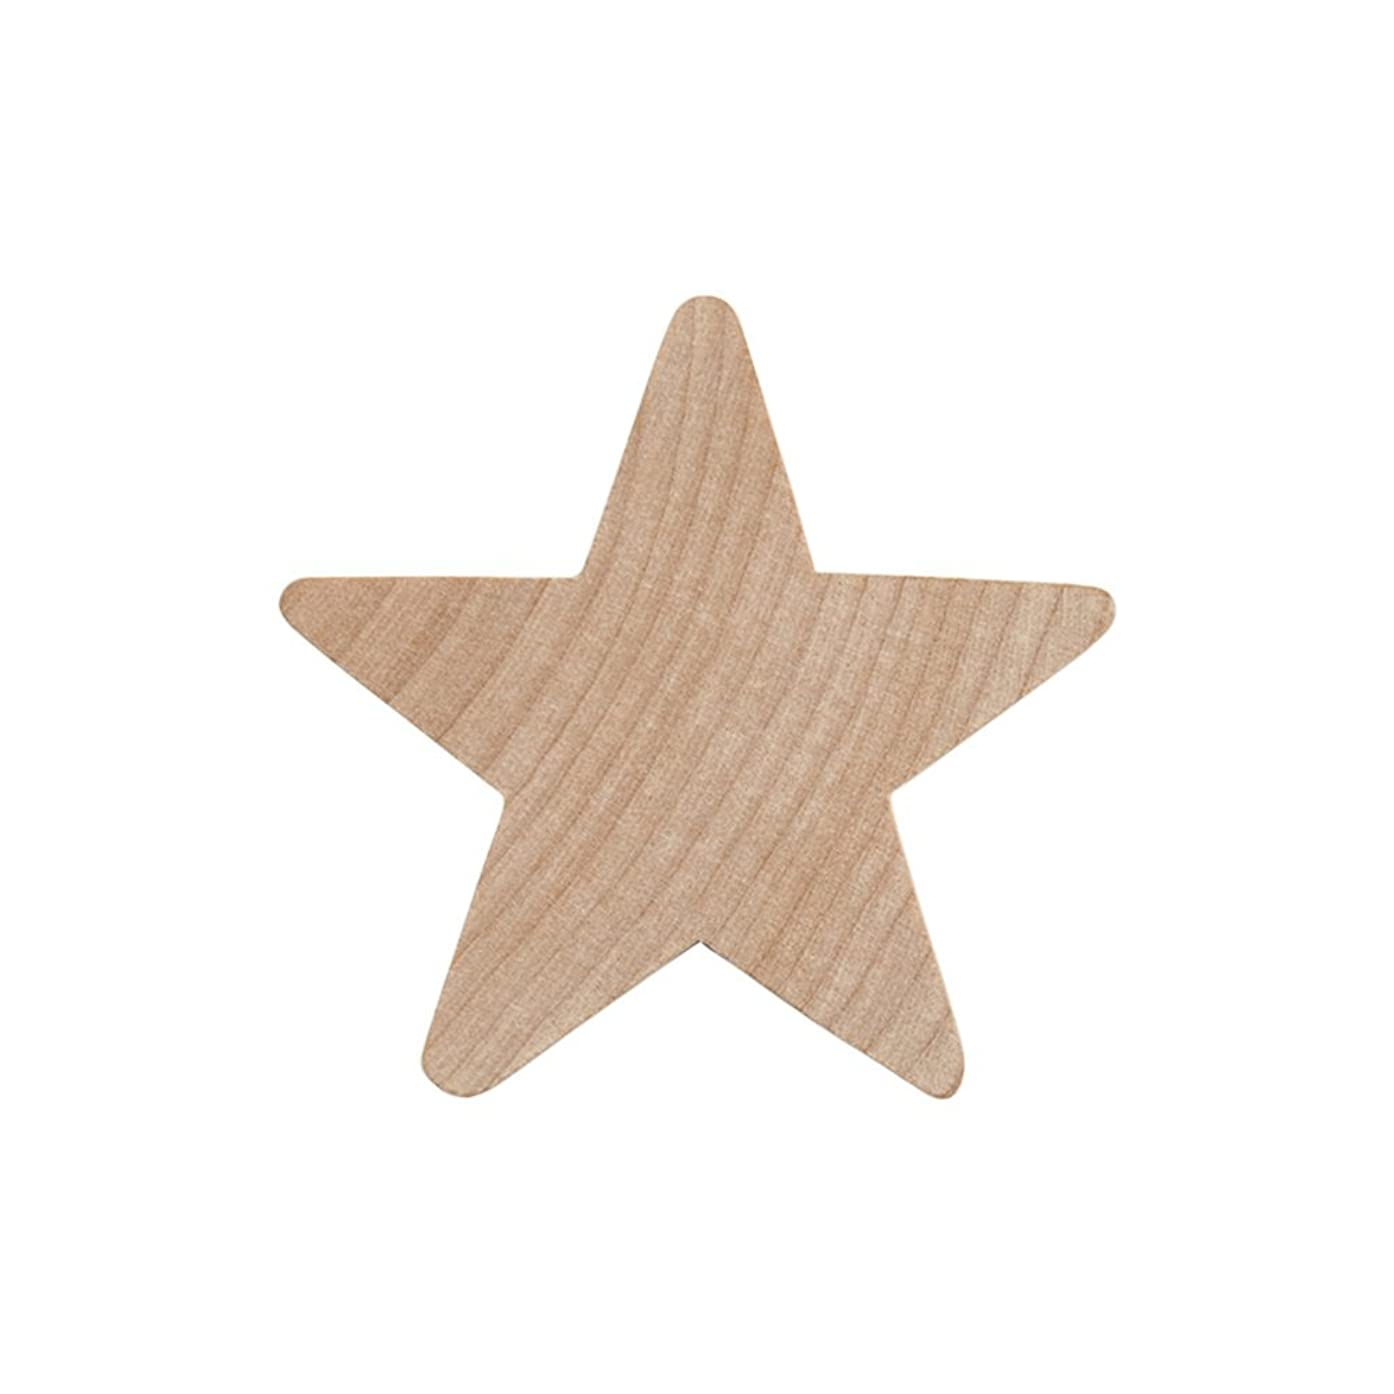 """2"""" Wood Star, Natural Unfinished Wooden Star Cutout Shape (2 Inch) - Bag of 100"""